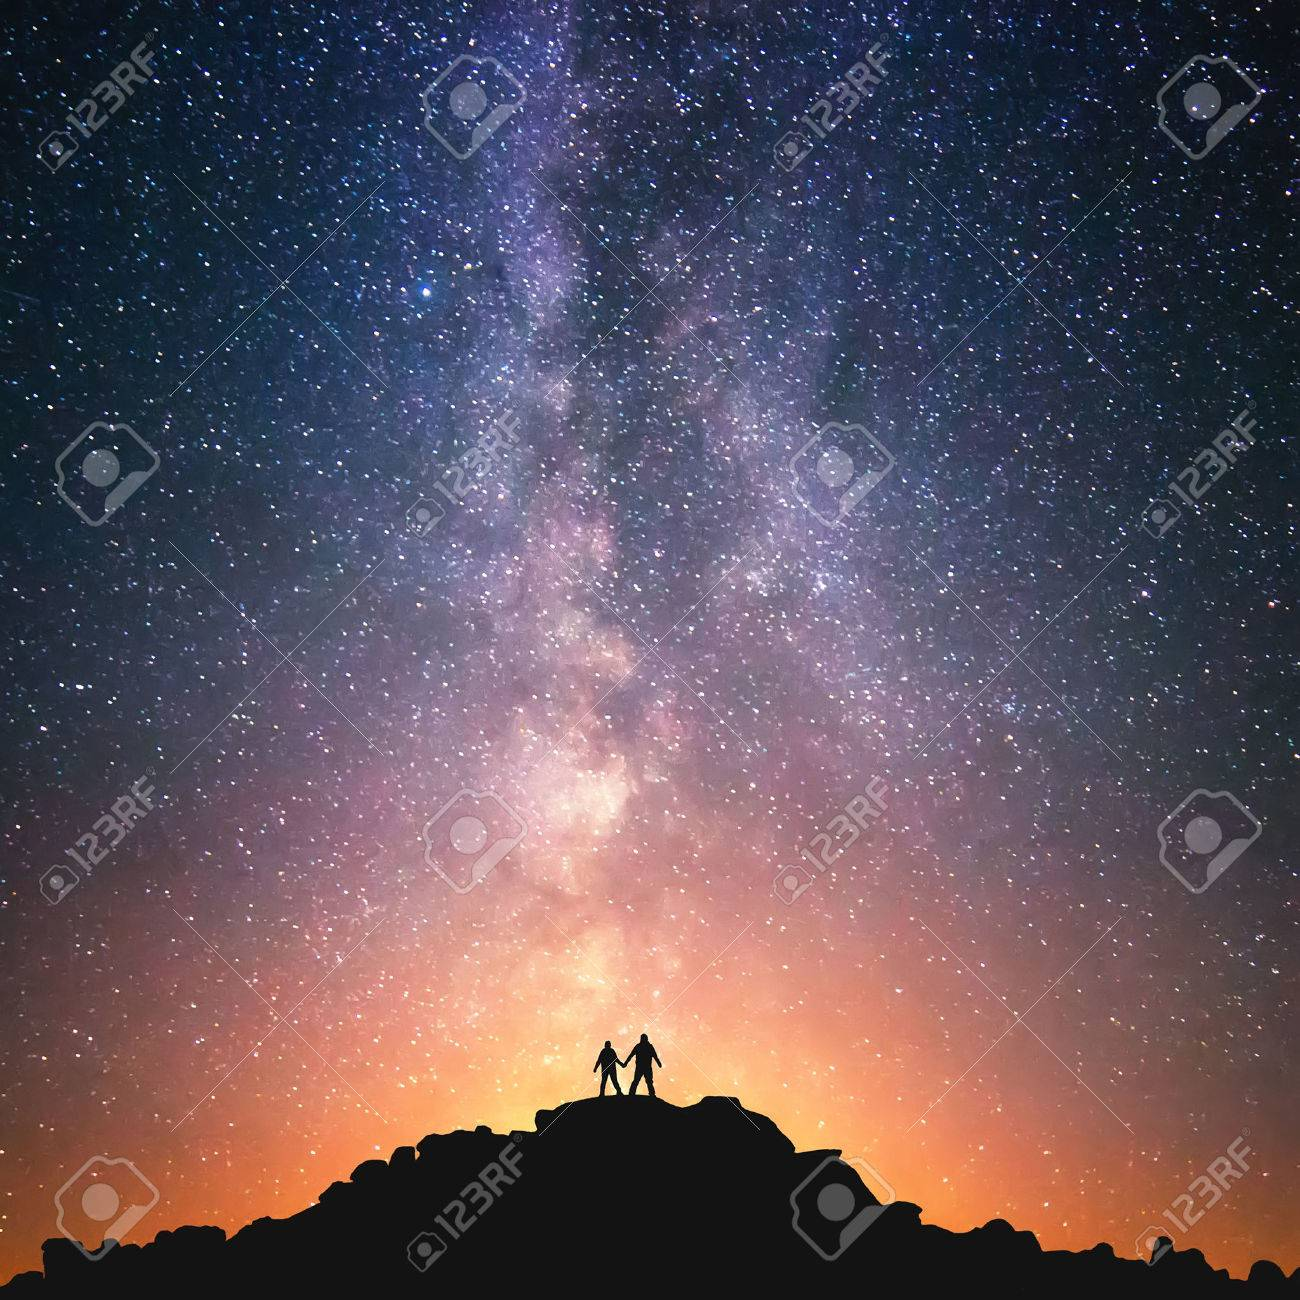 Silhouttes of two people standing together holding hands against the Milky Way on the top of the hill. - 48581910